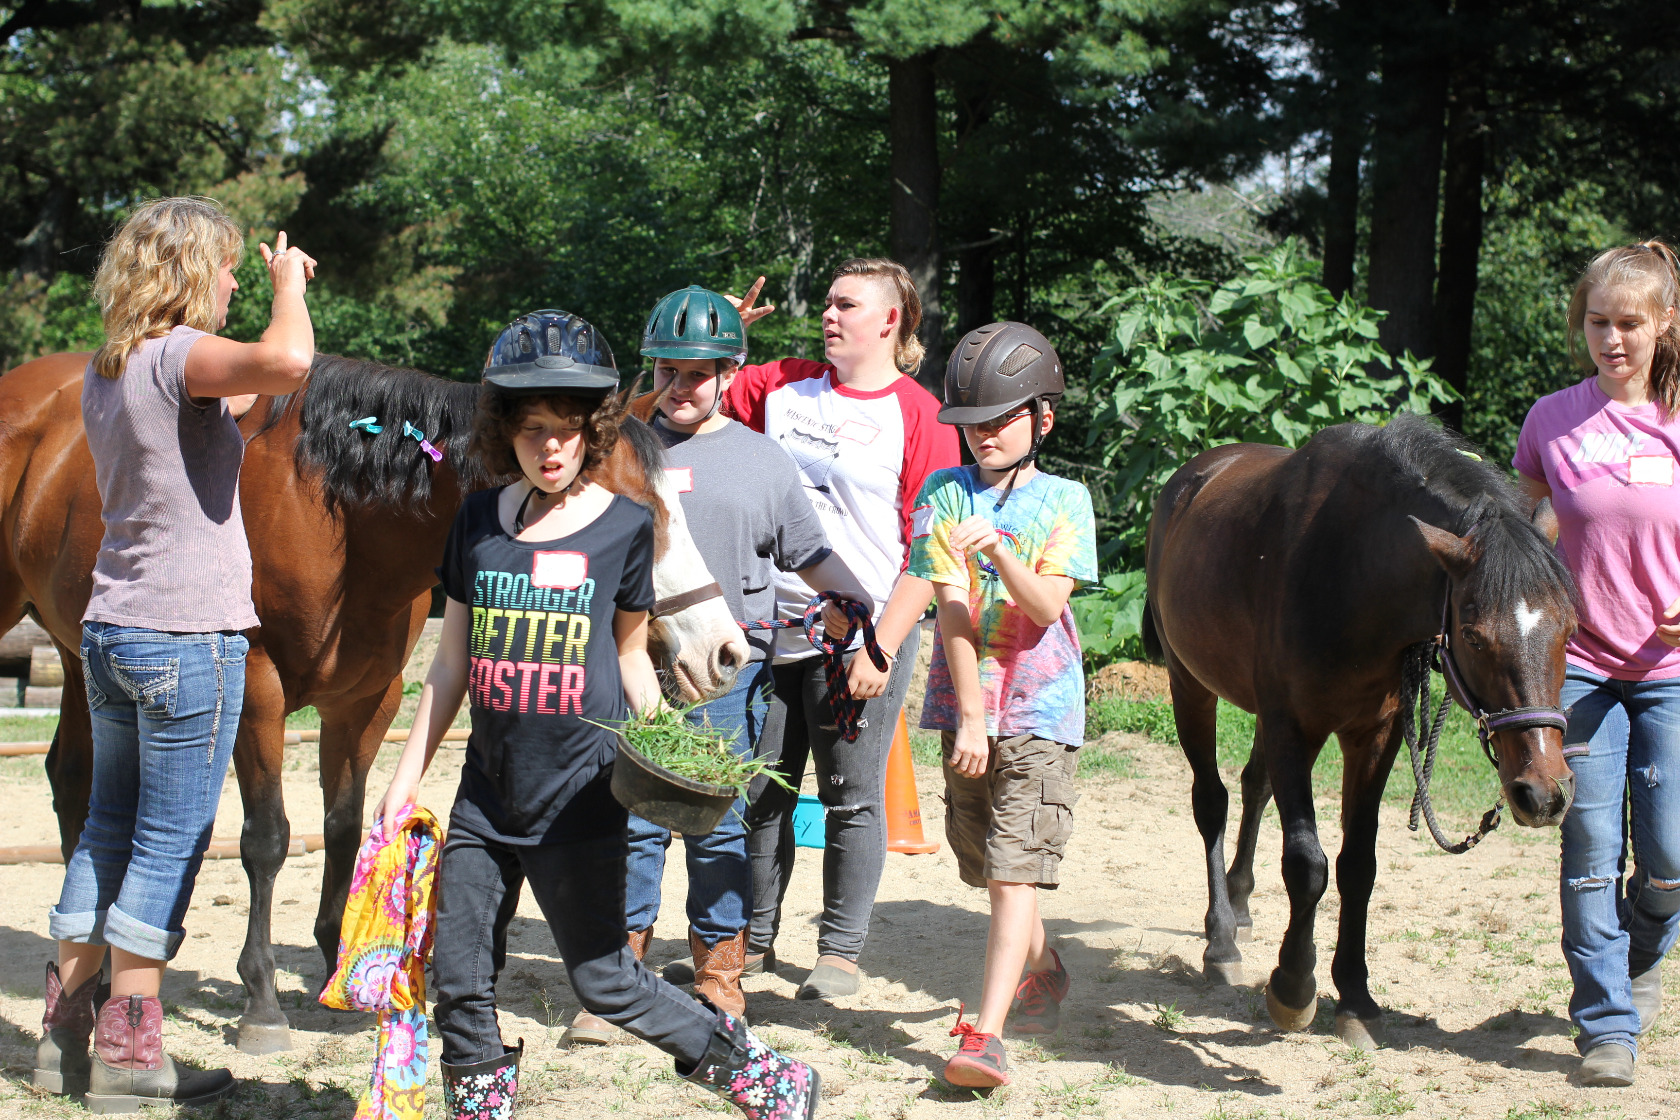 Helping people with horses equine assisted learning EAL